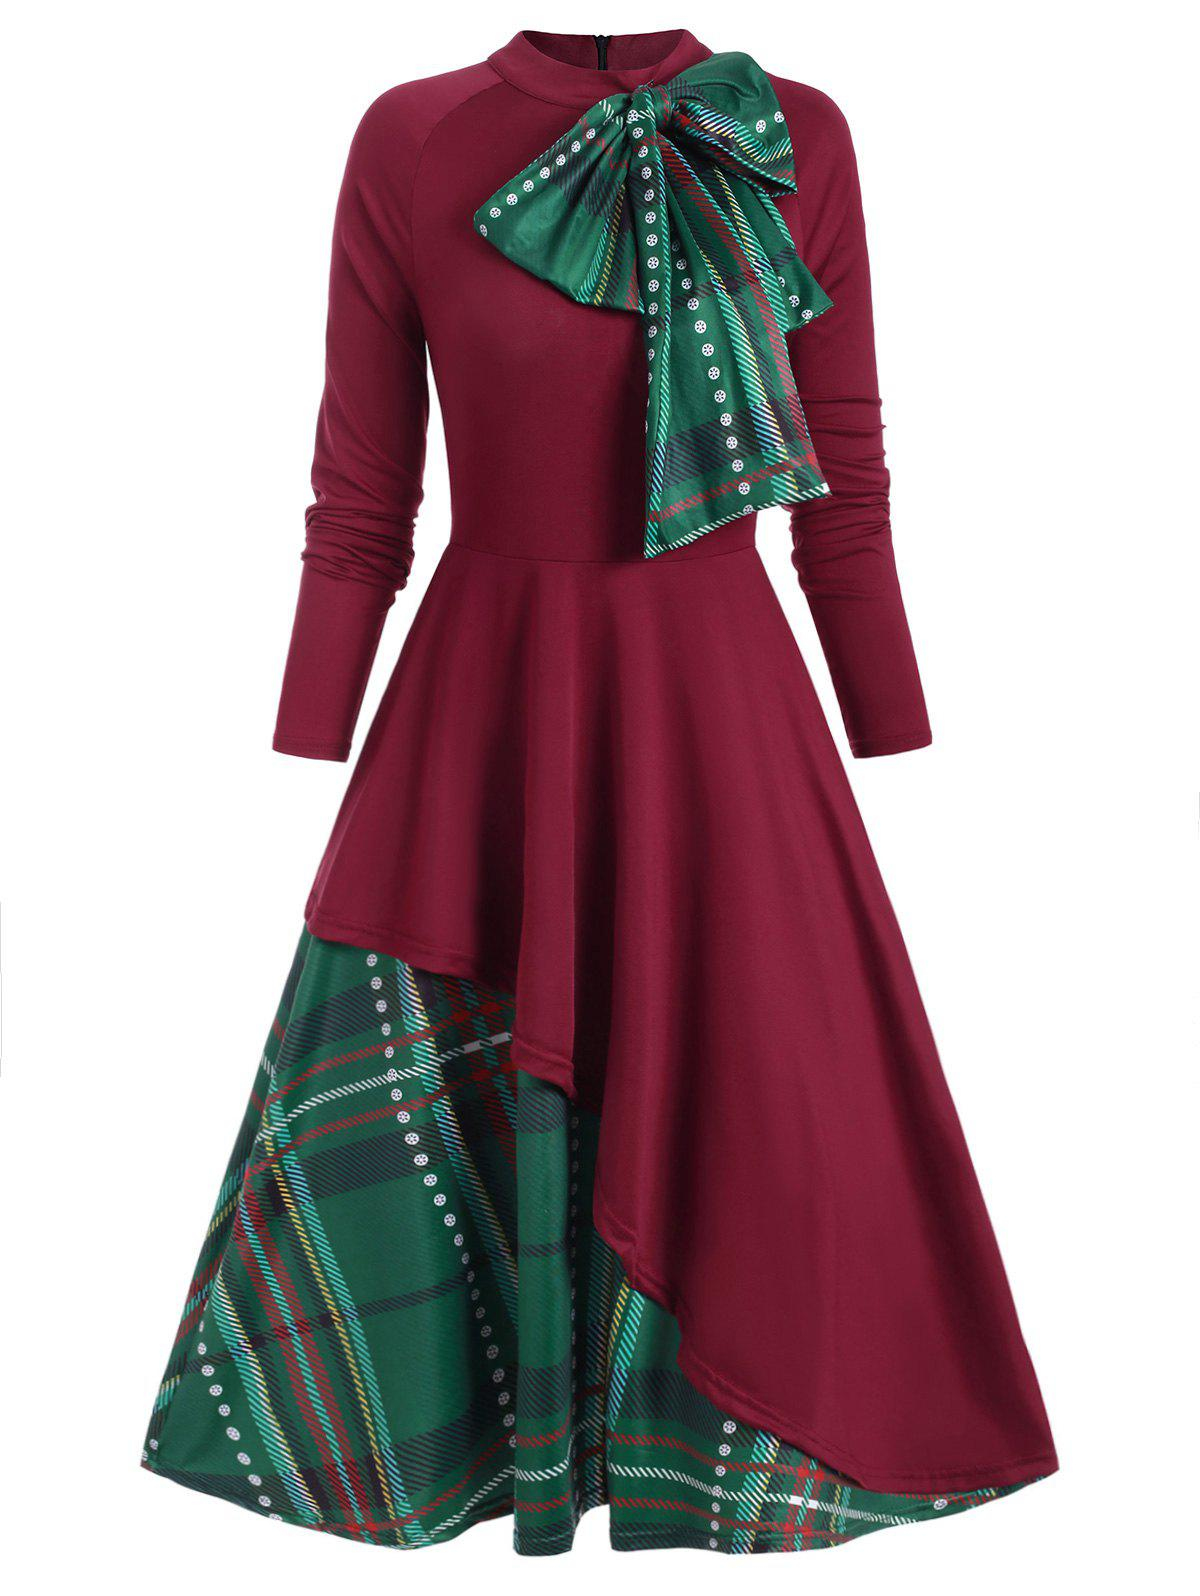 Plaid Contrast Bowknot Long Sleeves Overlay Dress - RED WINE L